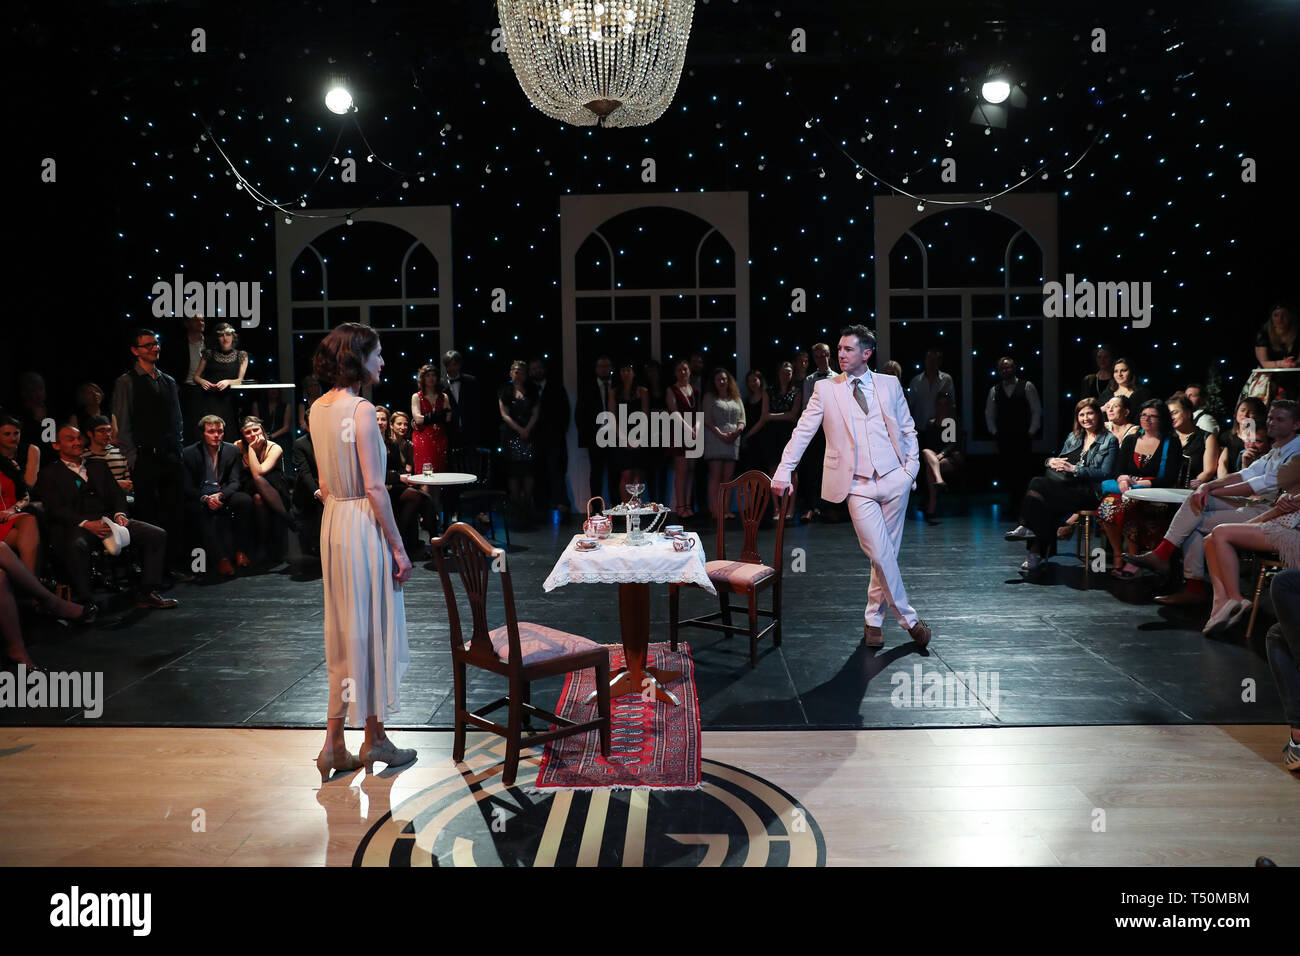 Brussels, Belgium. 19th Apr, 2019. An actor plays Jay Gatsby (R) while an actrees plays Daisy Buchanan during The Great Gatsby Immersive Show in Brussels, Belgium, April 19, 2019. By merging musical and stage play, The Great Gatsby Immersive Show is adapted from American author F. Scott Fitzgerald's 1925 novel 'The Great Gatsby', allowing the audience to dive deep into a world of the 1920s known as the Roaring Twenties. Presented alternately in Dutch, French and English, the show kicked off on March 14 and will last until May 19. Credit: Zhang Cheng/Xinhua/Alamy Live News - Stock Image